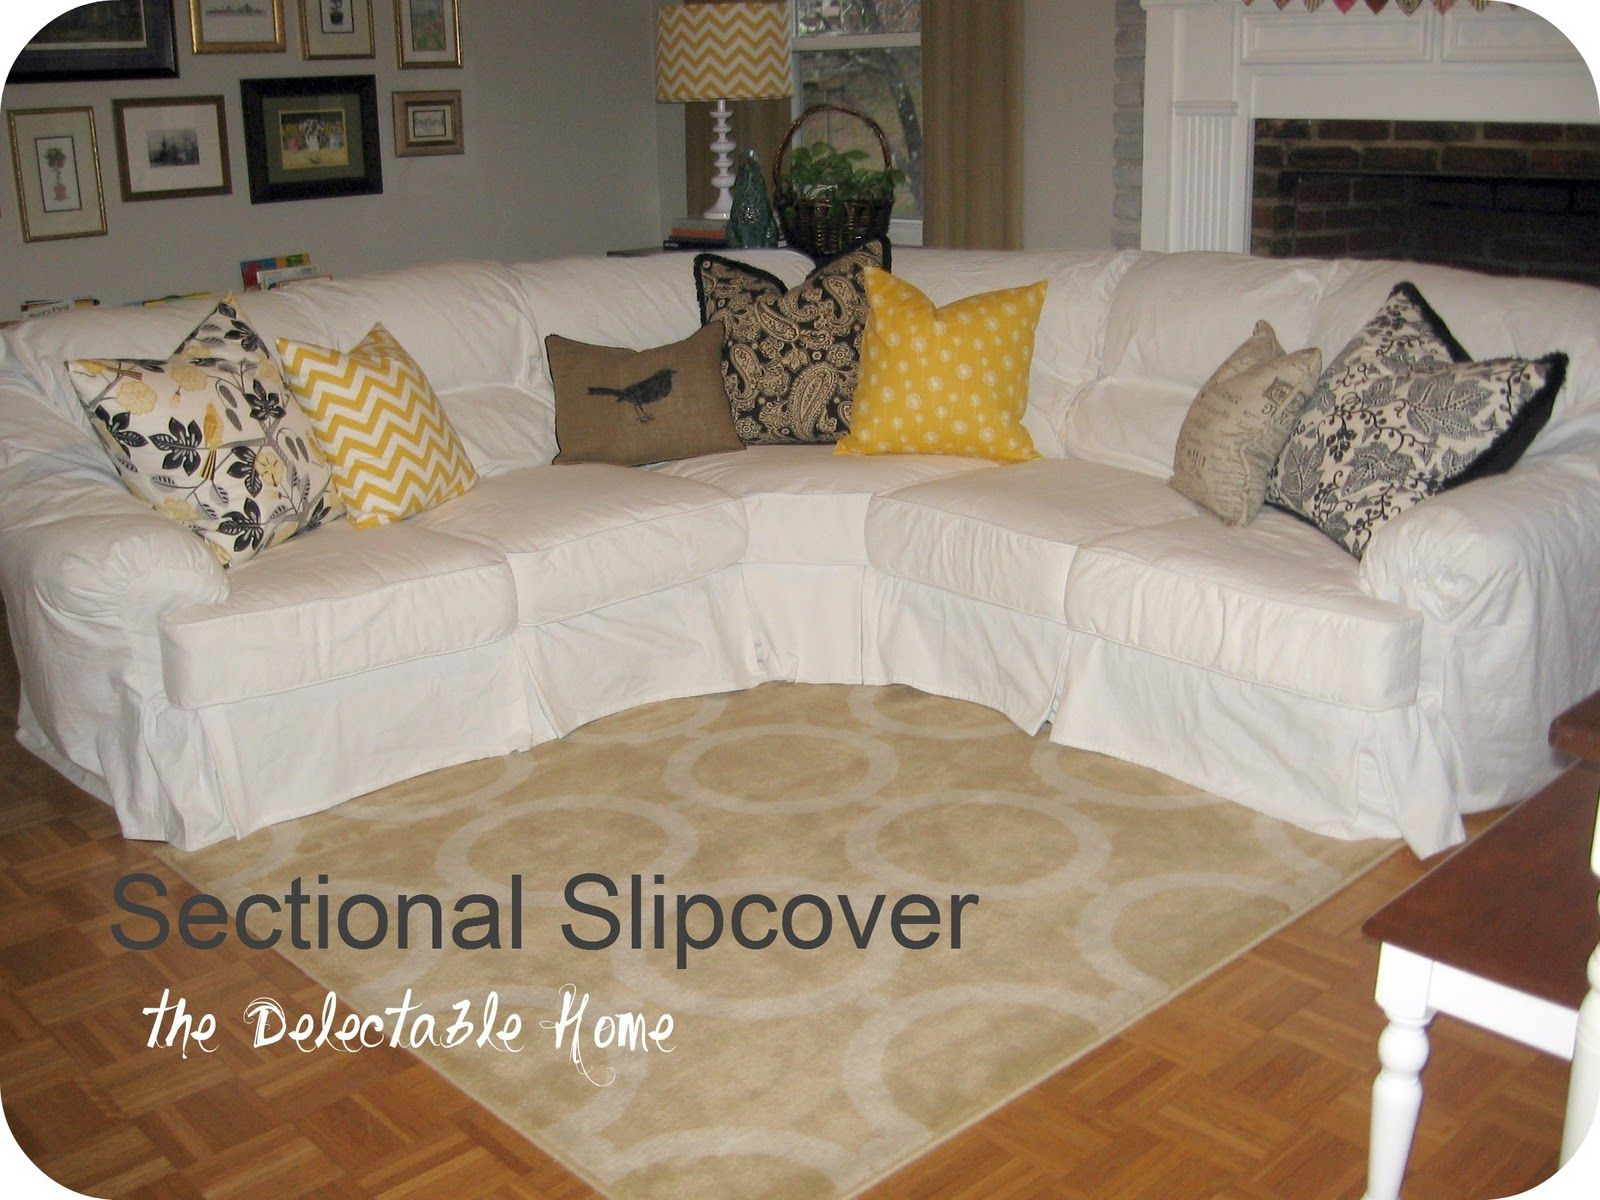 The Delectable Home impossible sectional slipcover : sectional couch covers for dogs - Sectionals, Sofas & Couches